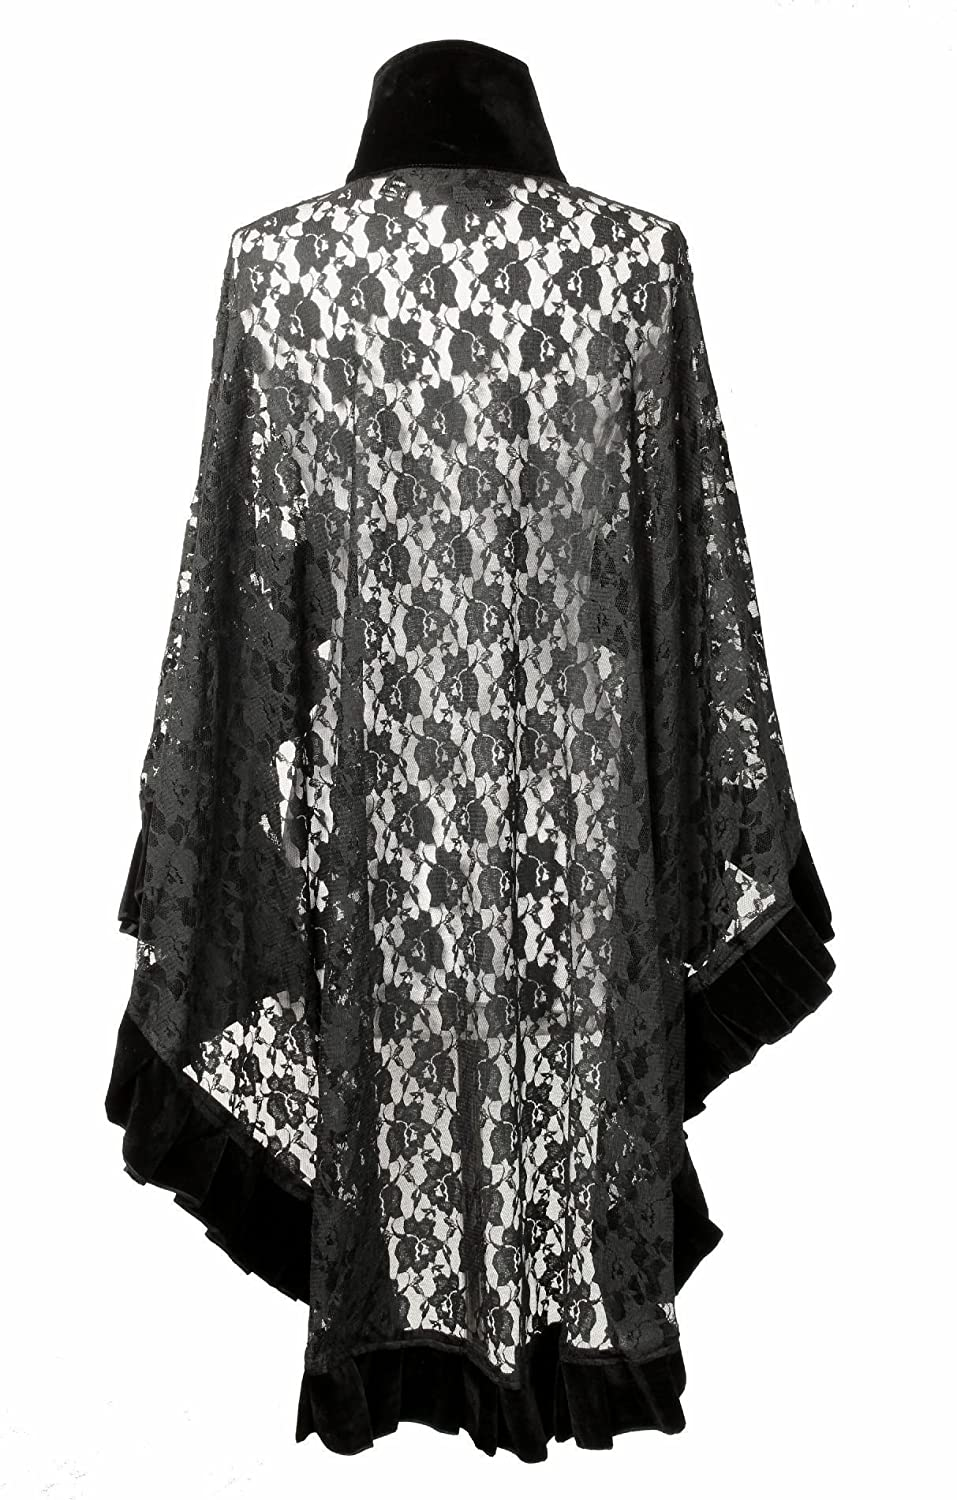 Vintage Coats & Jackets | Retro Coats and Jackets Burleska Womens Catherine Black Lace Cape Wrap With Velvet Trim $68.99 AT vintagedancer.com